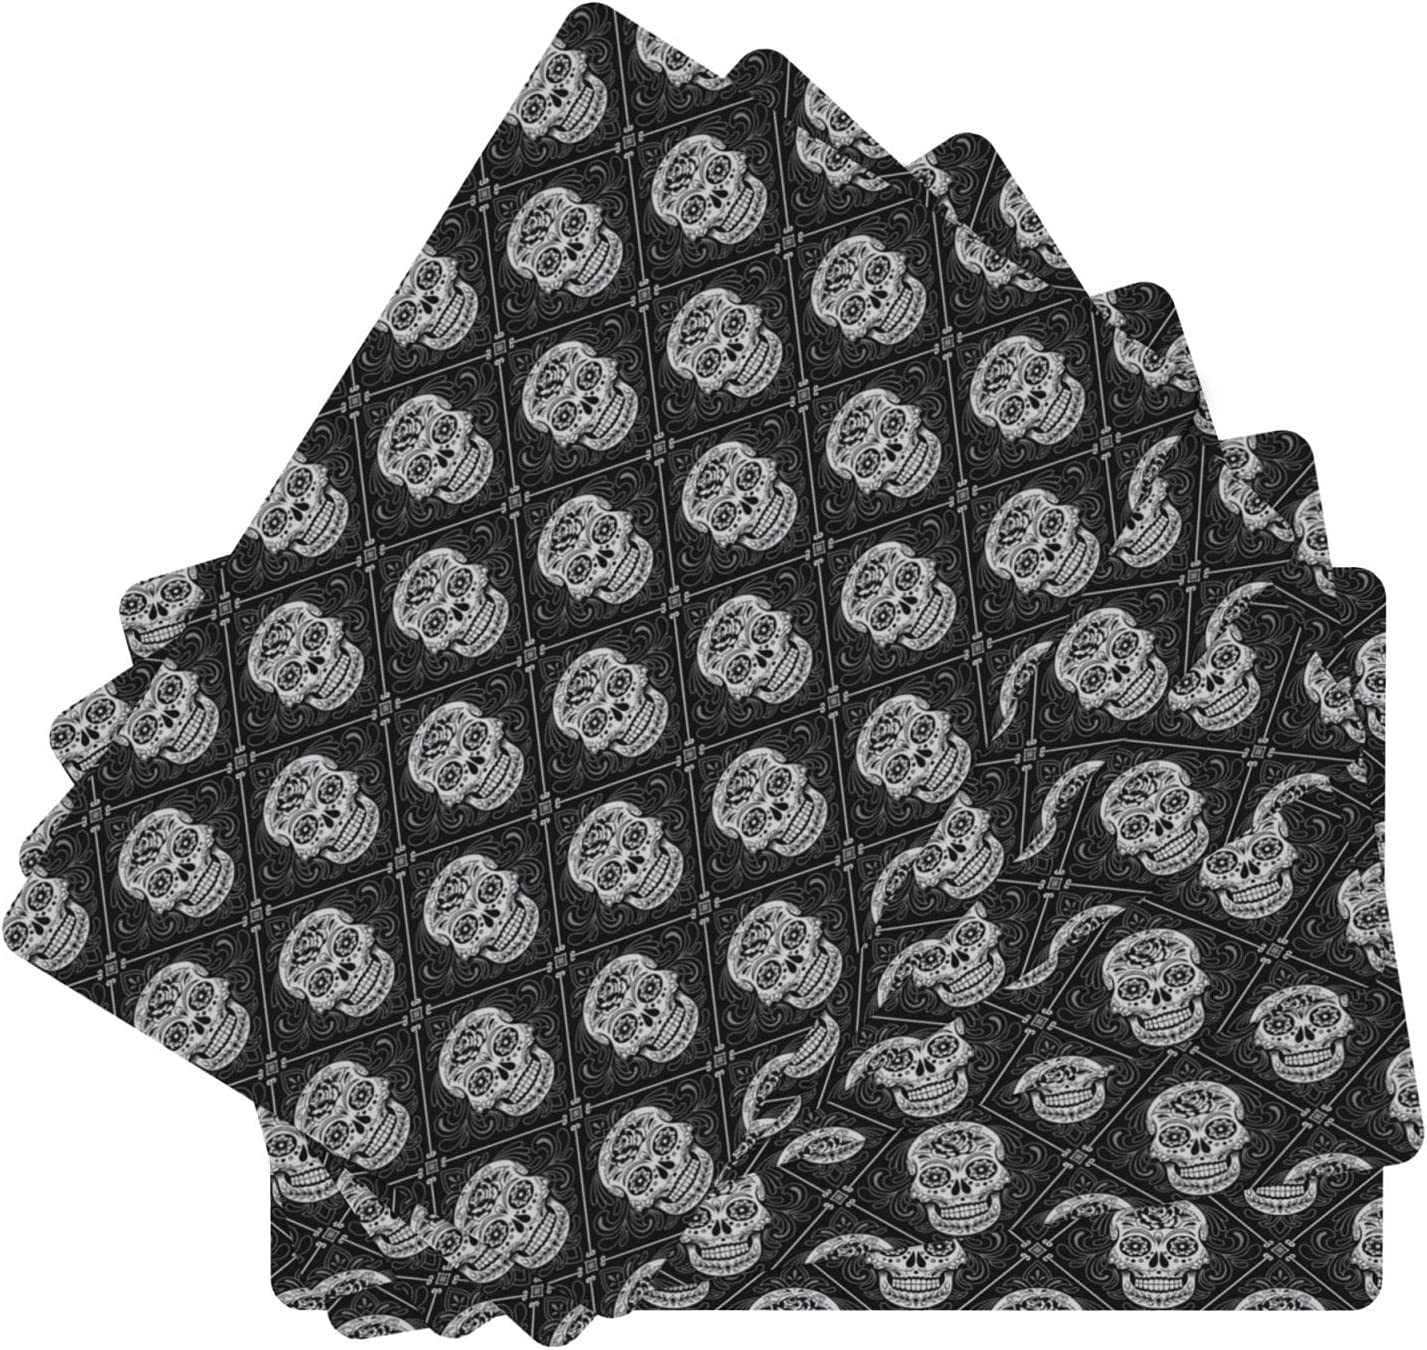 Day of The Dead Leather Table Heat Washable Insula Mats New item Weekly update Set 6